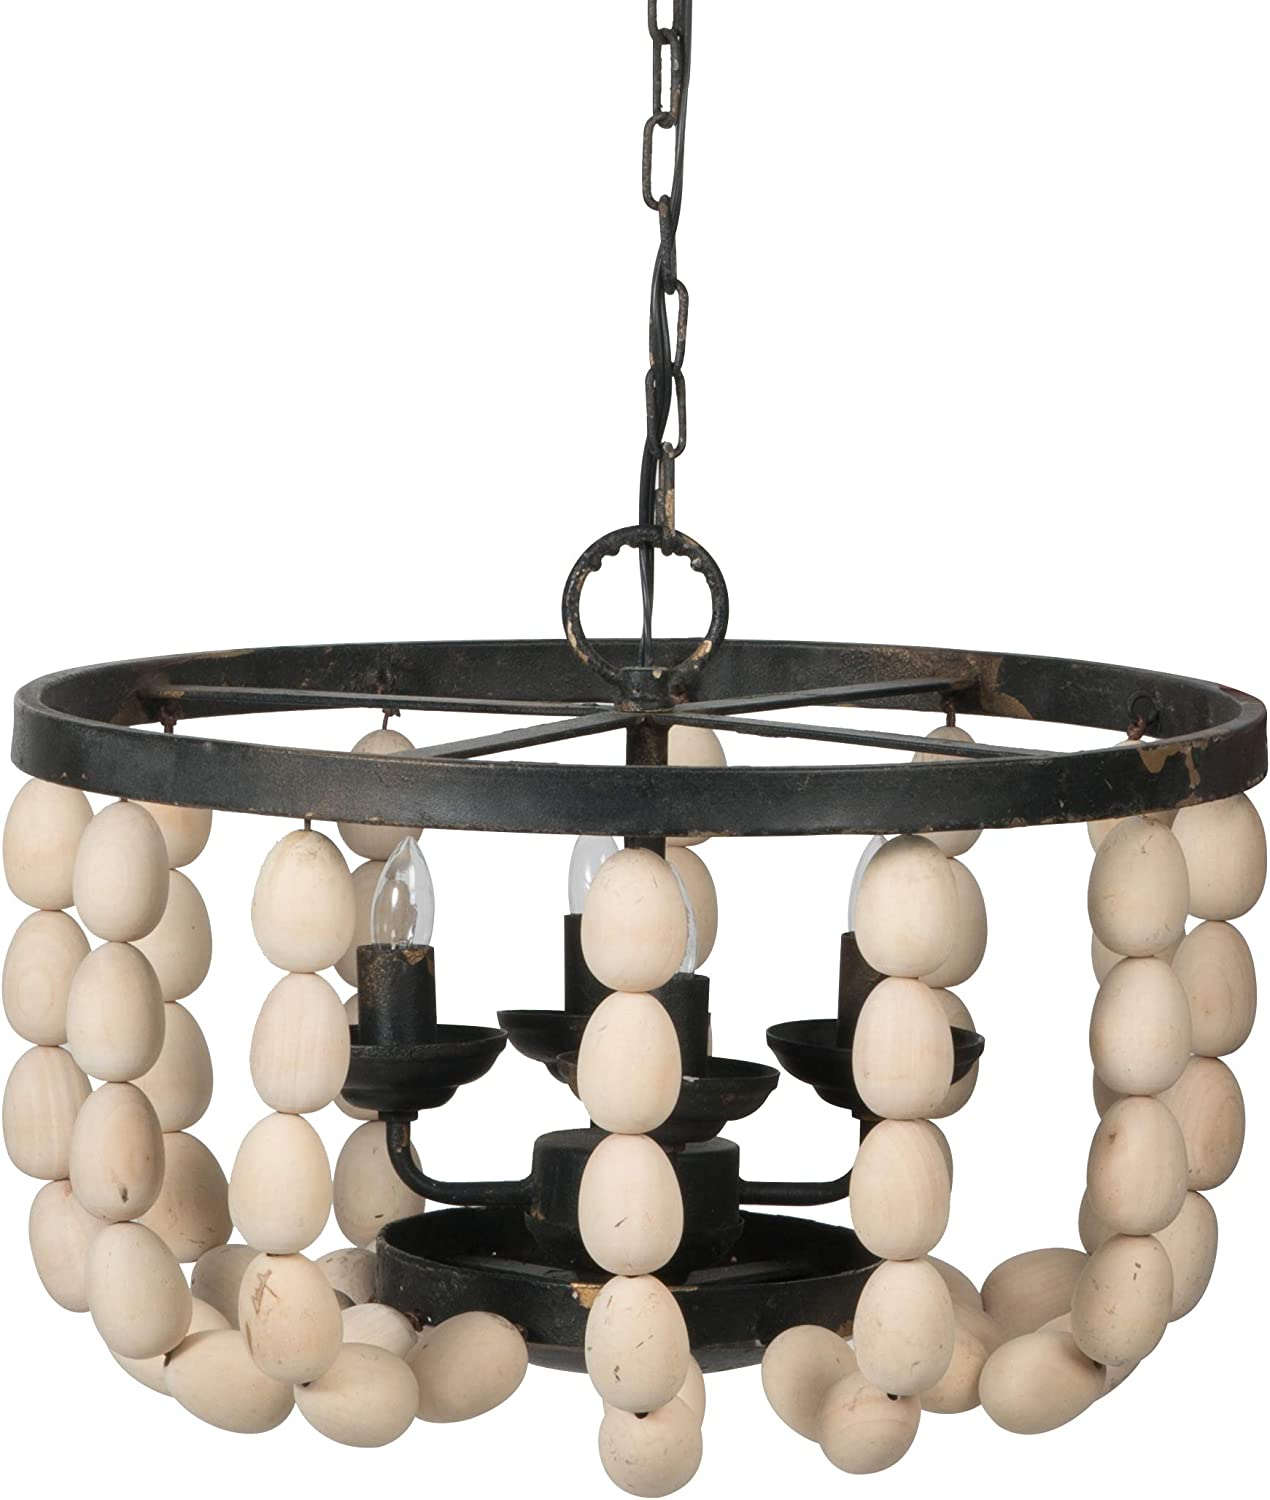 A&B Home Small Beaded 4-Light Chandelier, Dimensions: 18.9L x 18.9W x 13.8H Inches, Multi